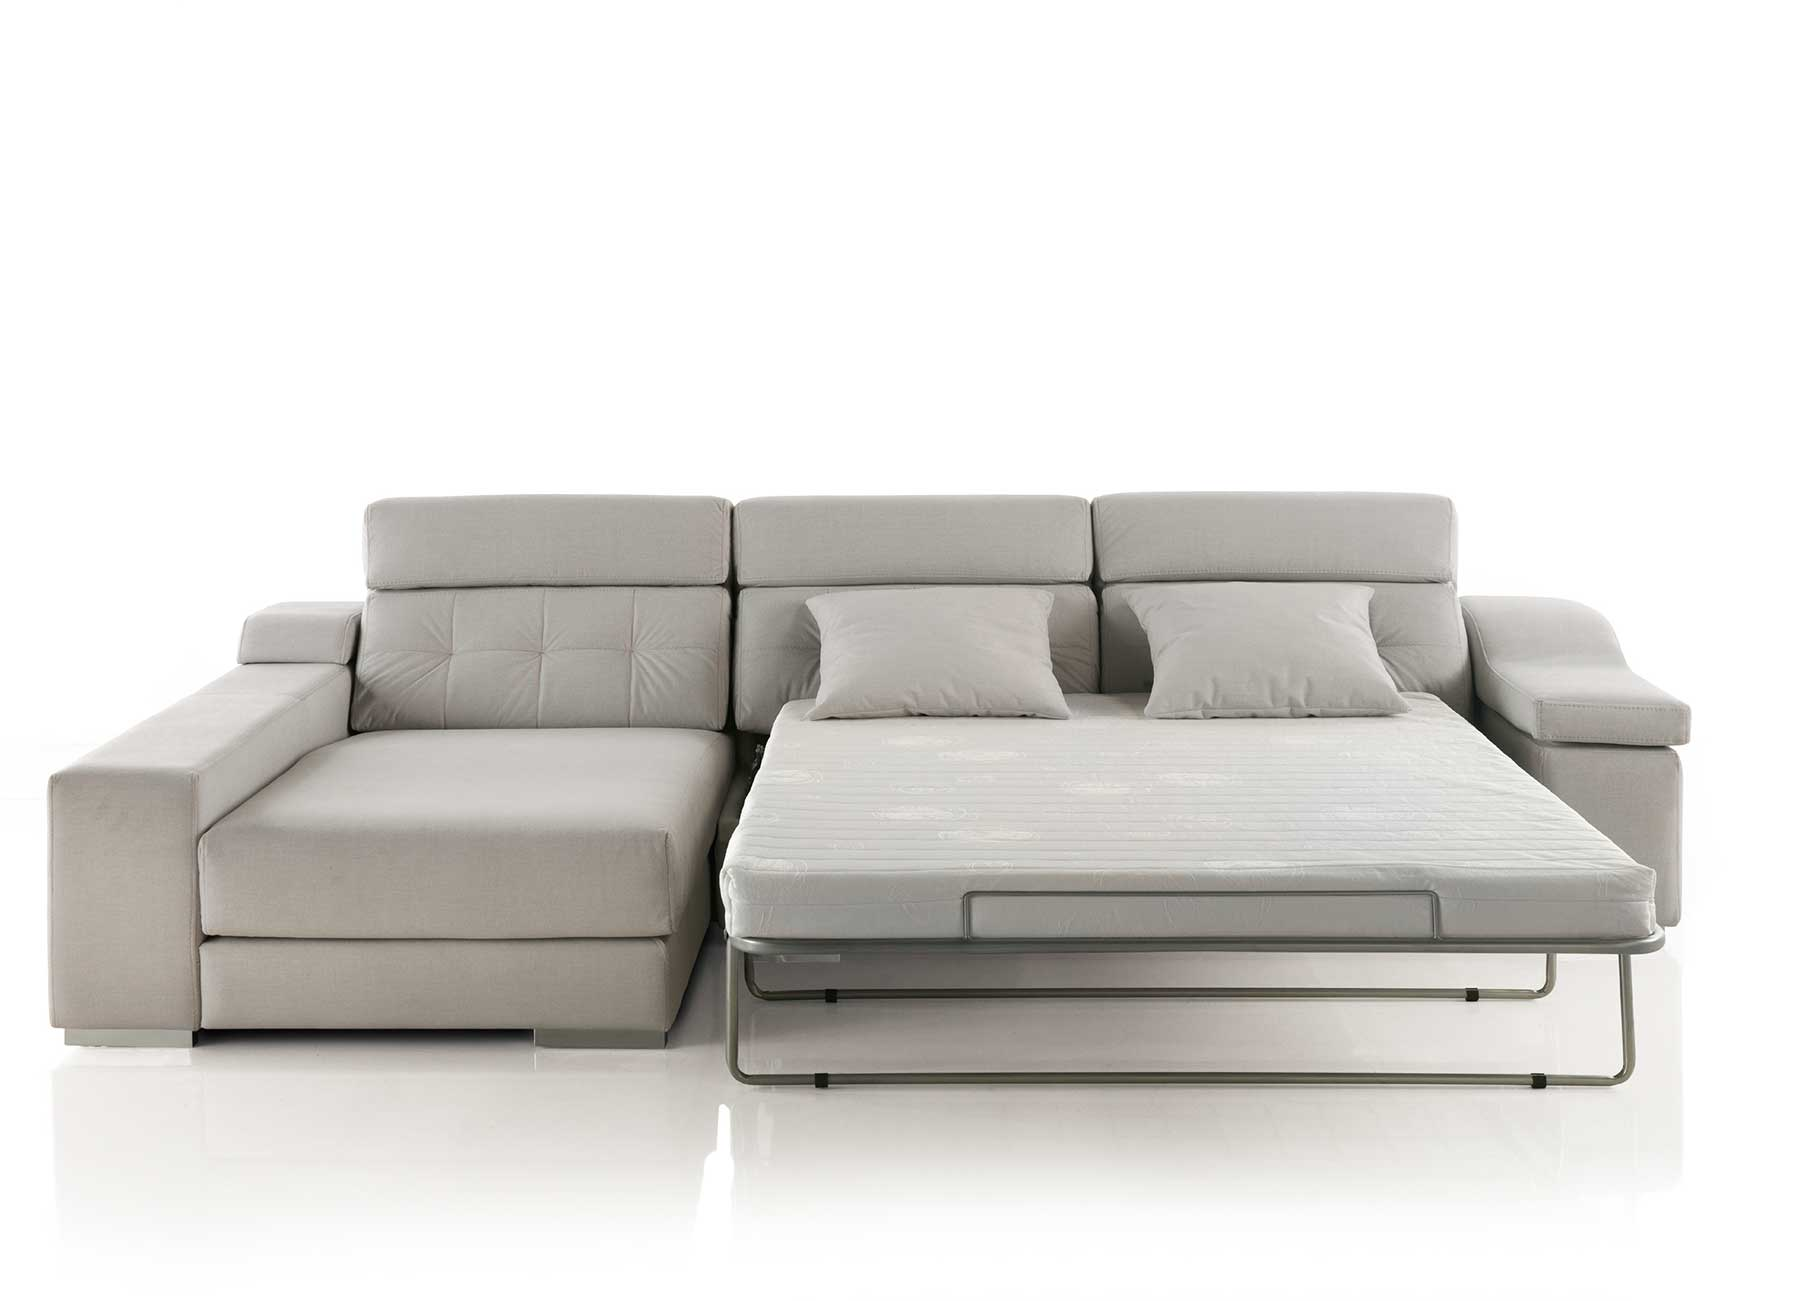 SILUA CHAISELONGUE CAMA - R.G